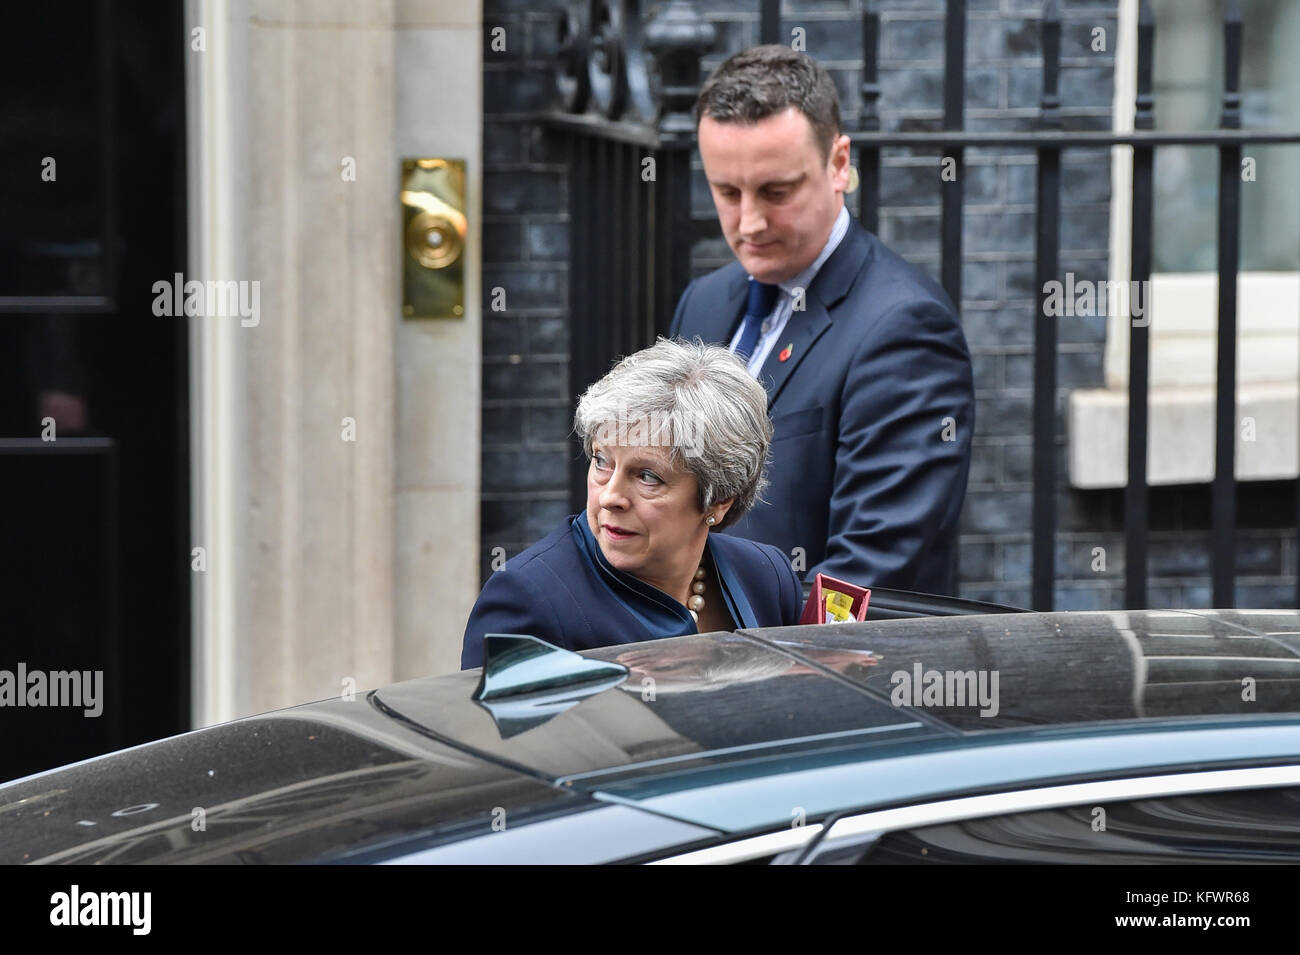 London, United Kingdom. 01st Nov, 2017. UK Prime Minister Theresa May leaves 10 Downing Street bound for the House Stock Photo